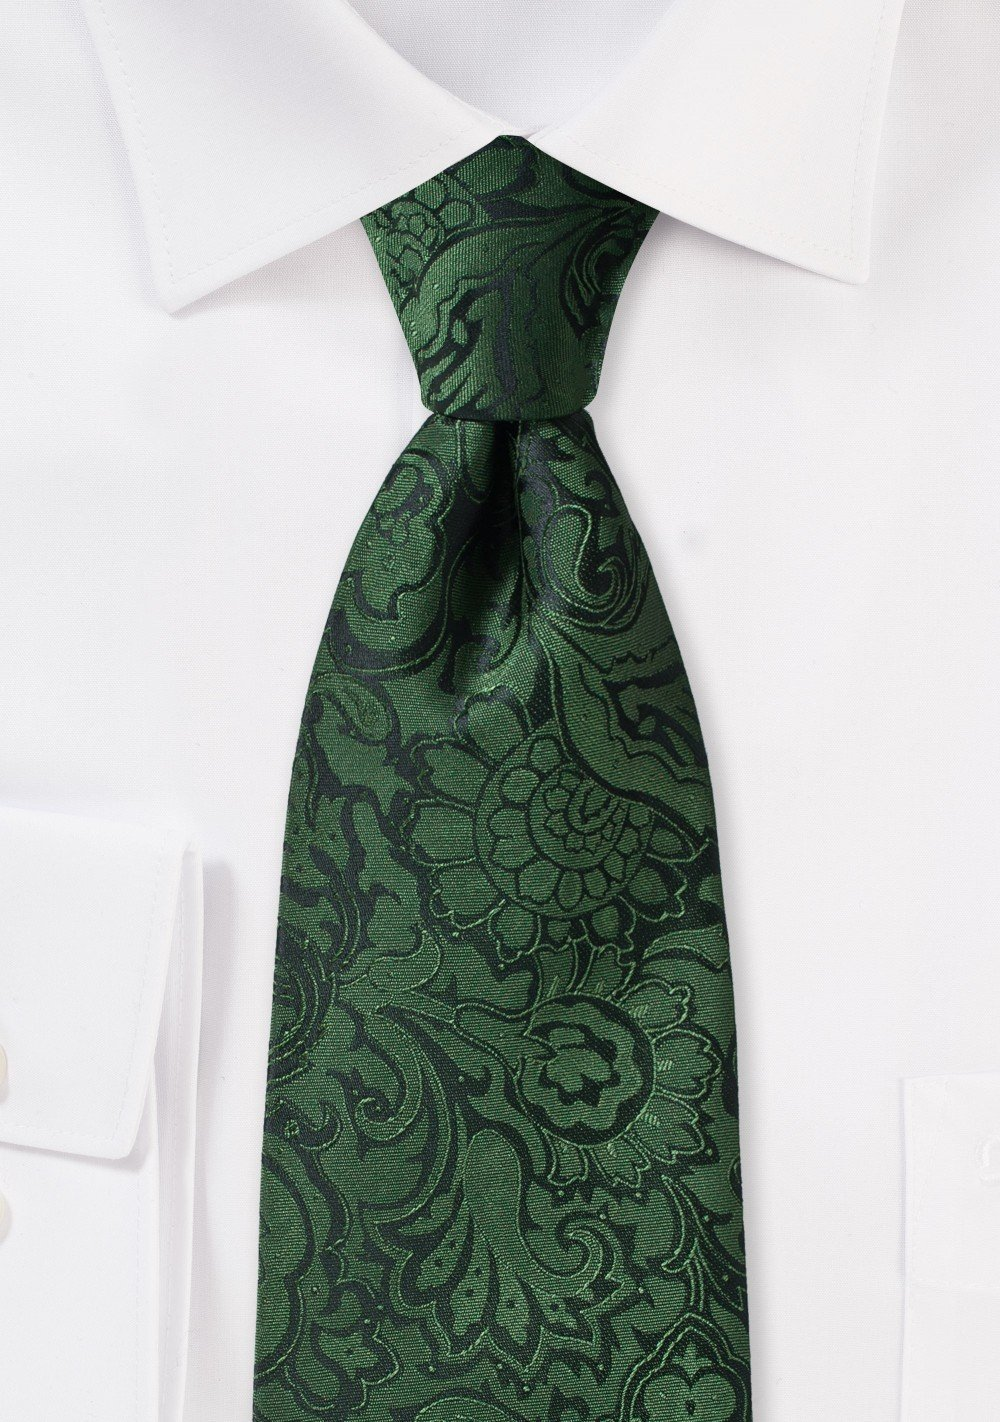 Forest Green and Black Paisley Tie